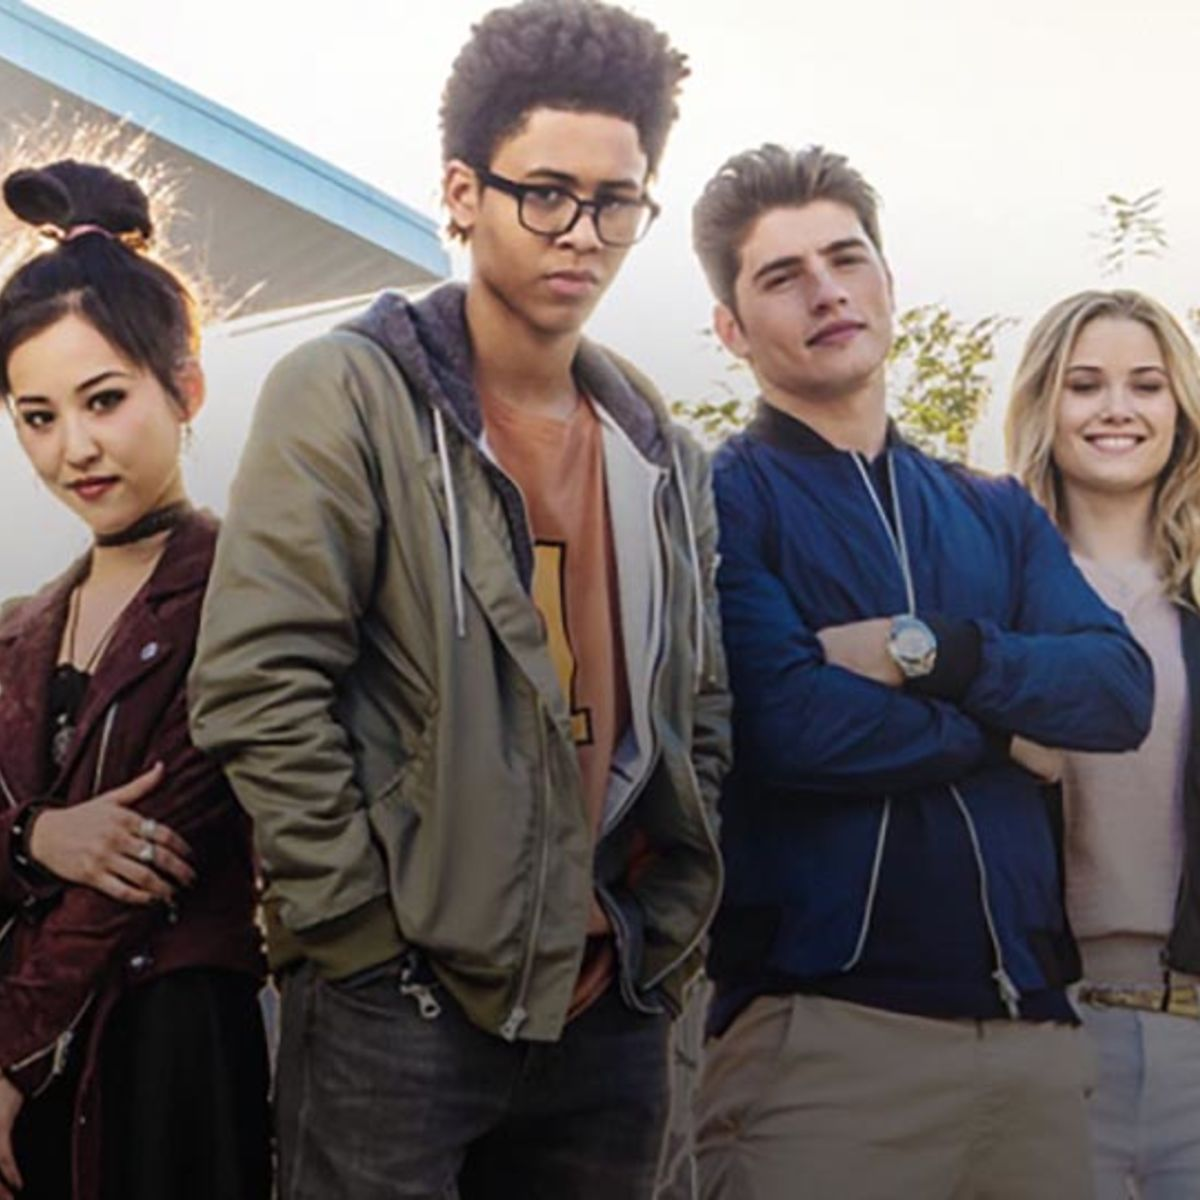 runaways-tv-series-cast_02.jpg